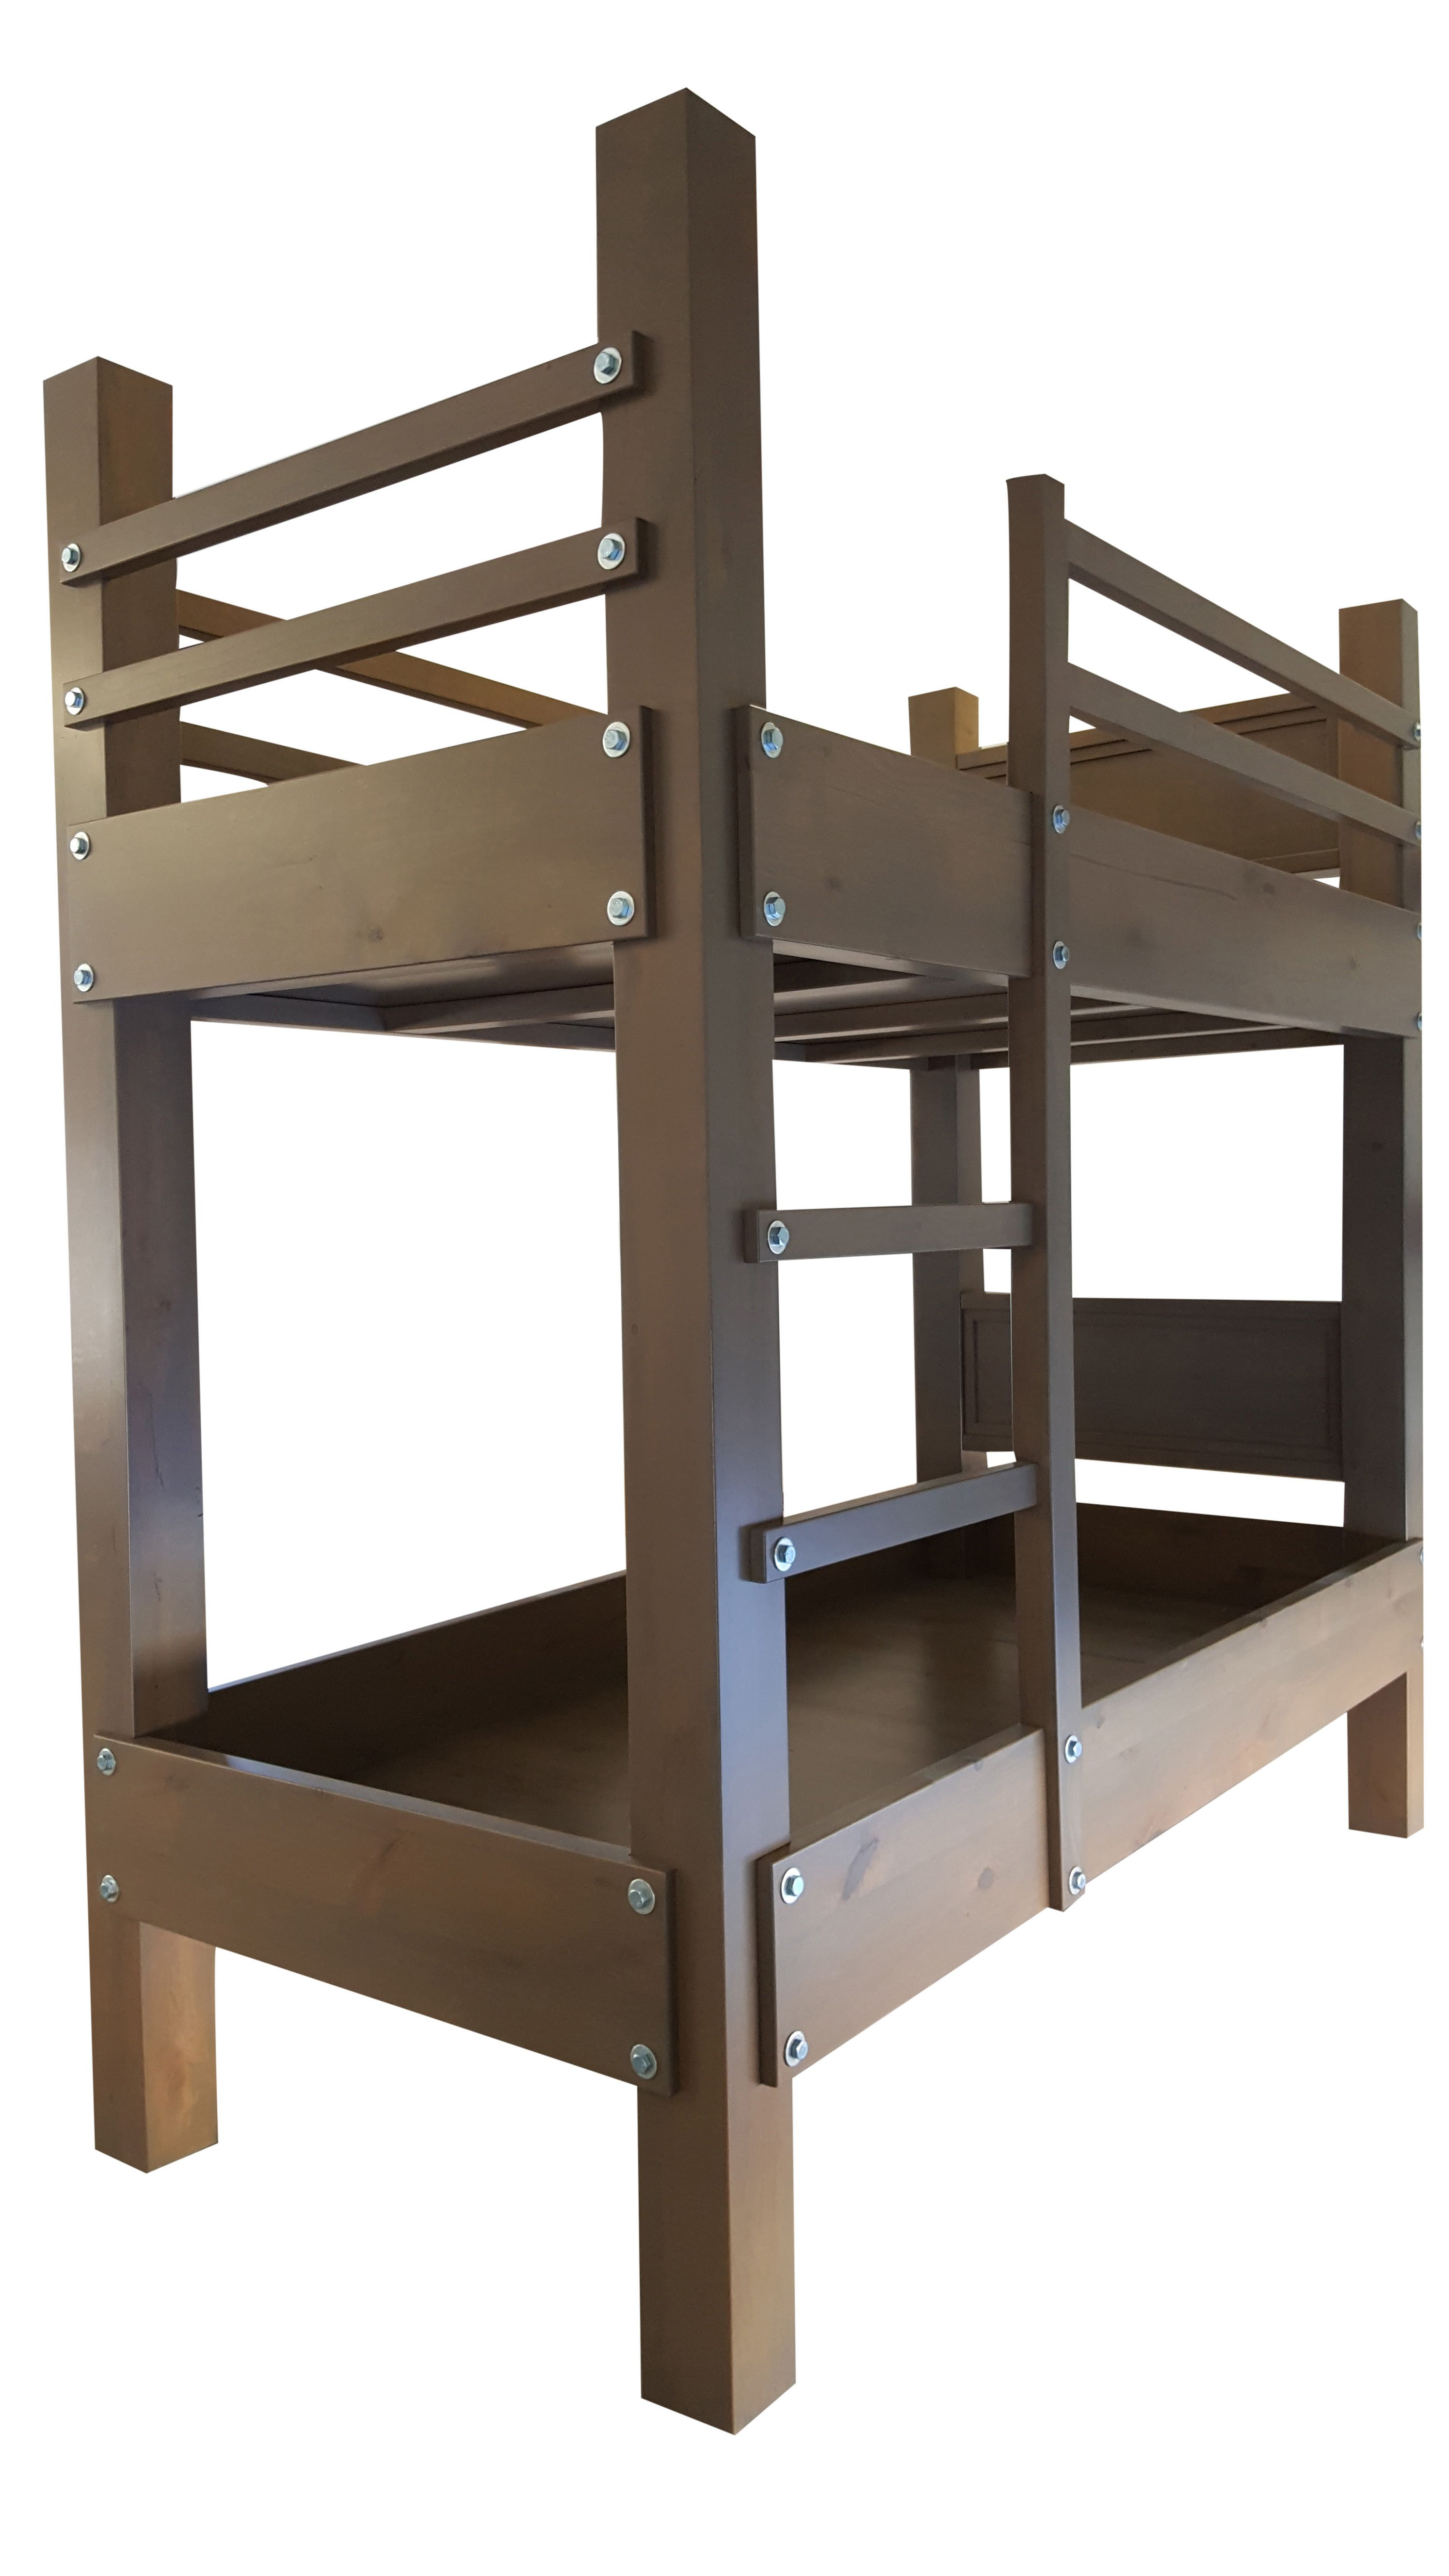 Buy Custom Made Twin Xl Over Twin Xl Bunk Beds Made To Order From